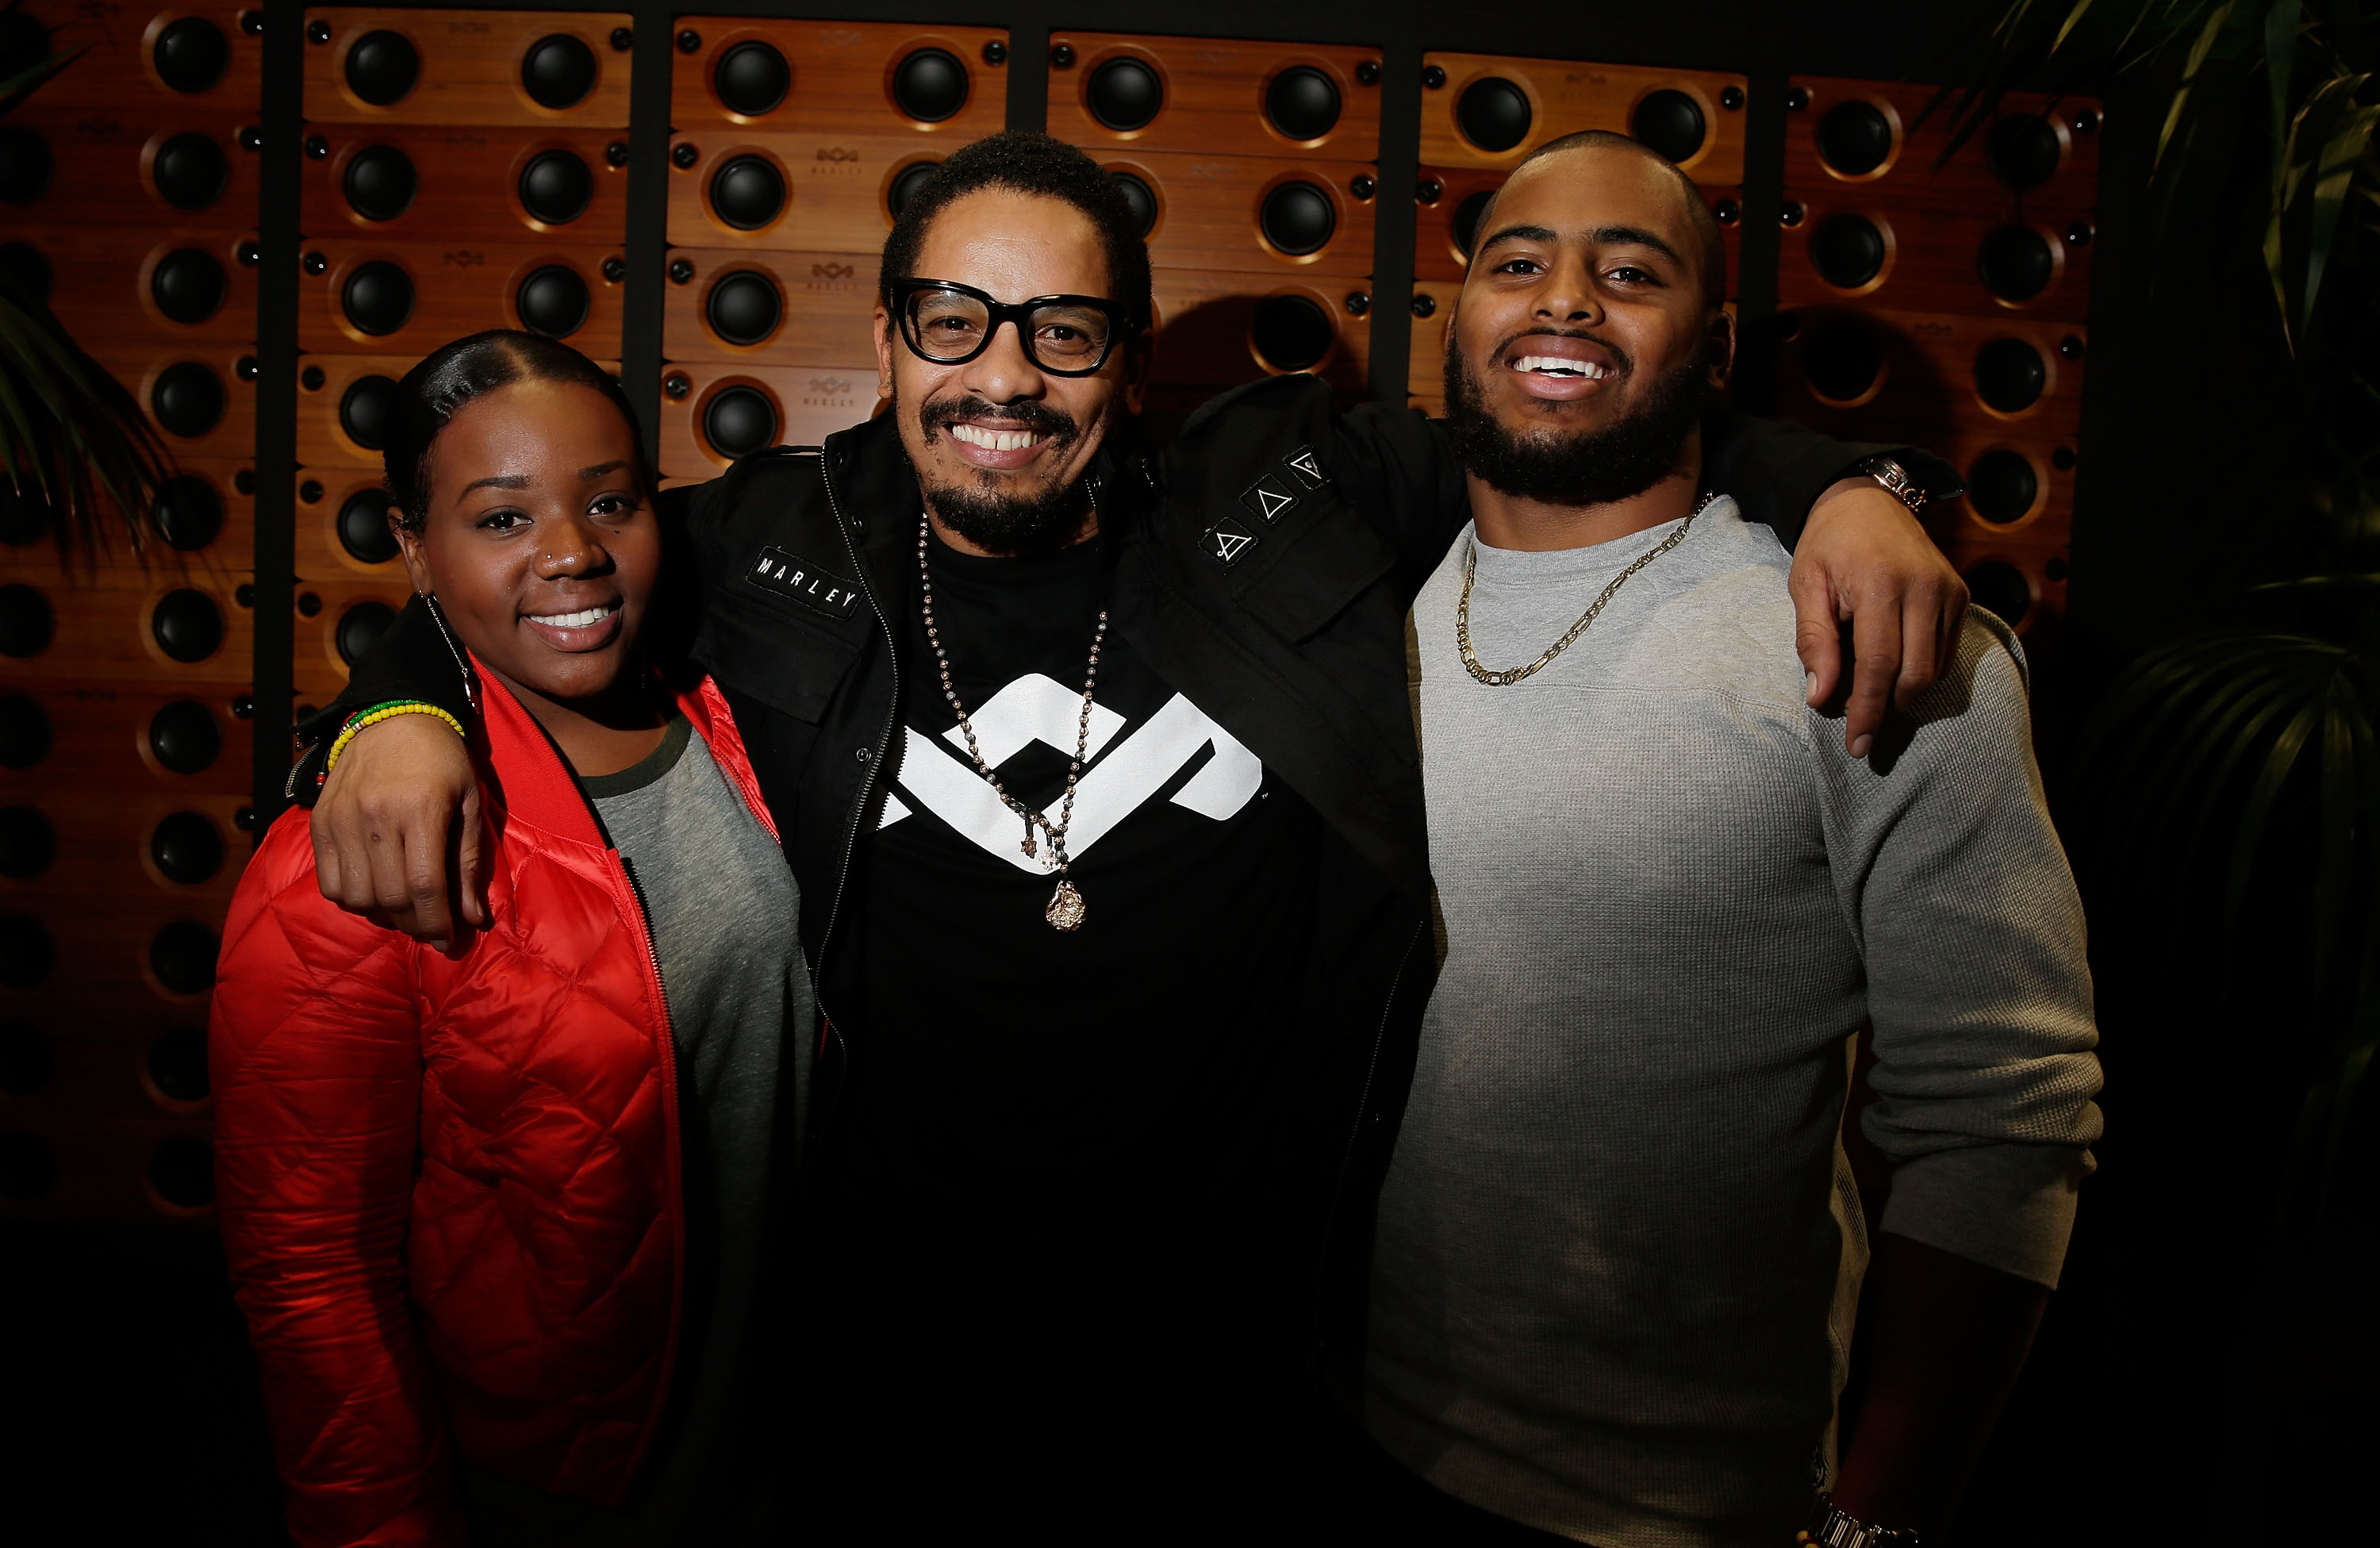 Rohan Marley with niece Justice Marley, and son, University of Tulane football player Nico Marley.